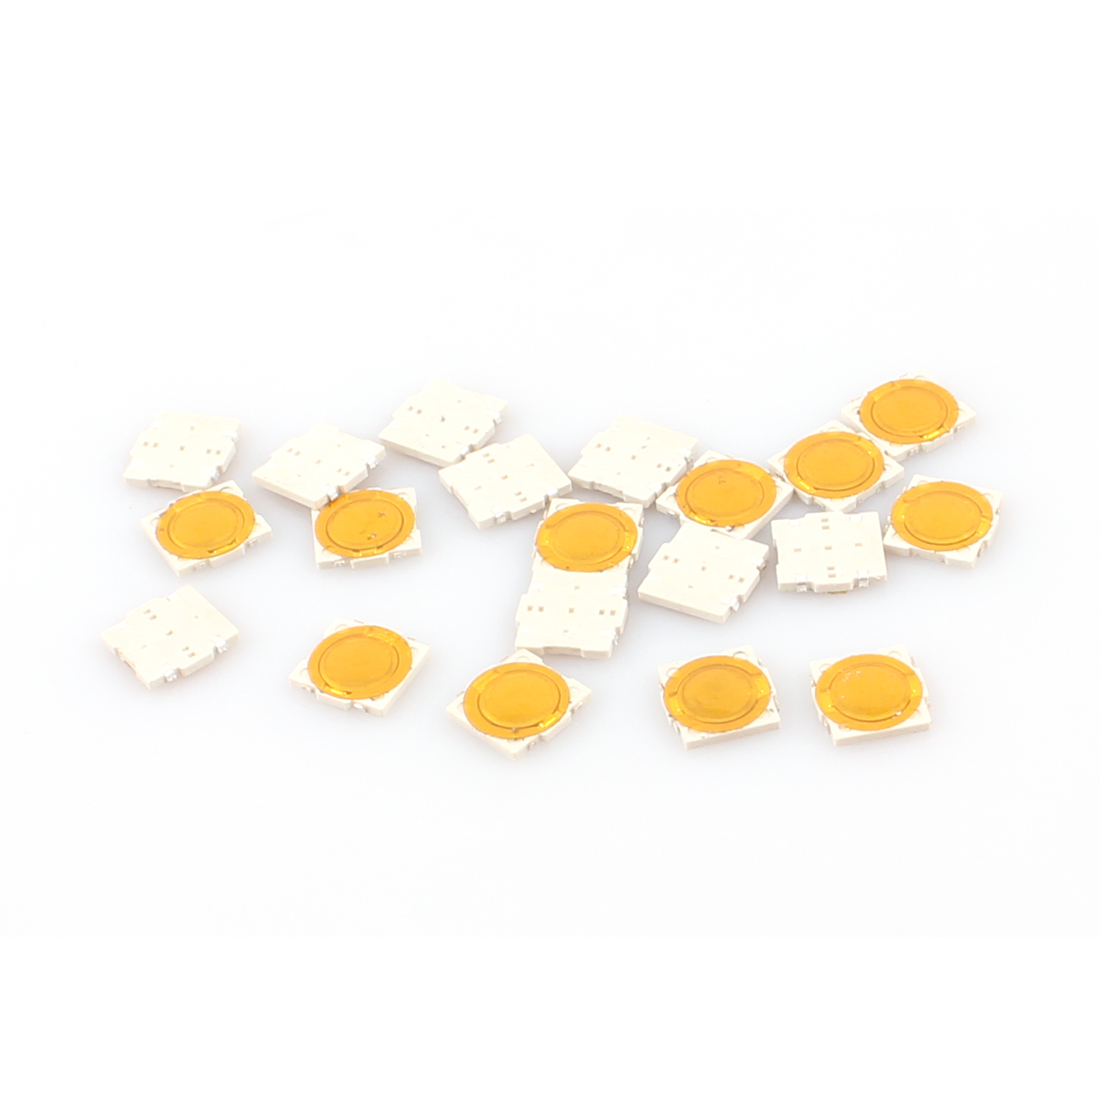 20 Pcs 4x4x0.5mm 4 Pins Momentary Push Button SMD SMT Tactile Tact Switch